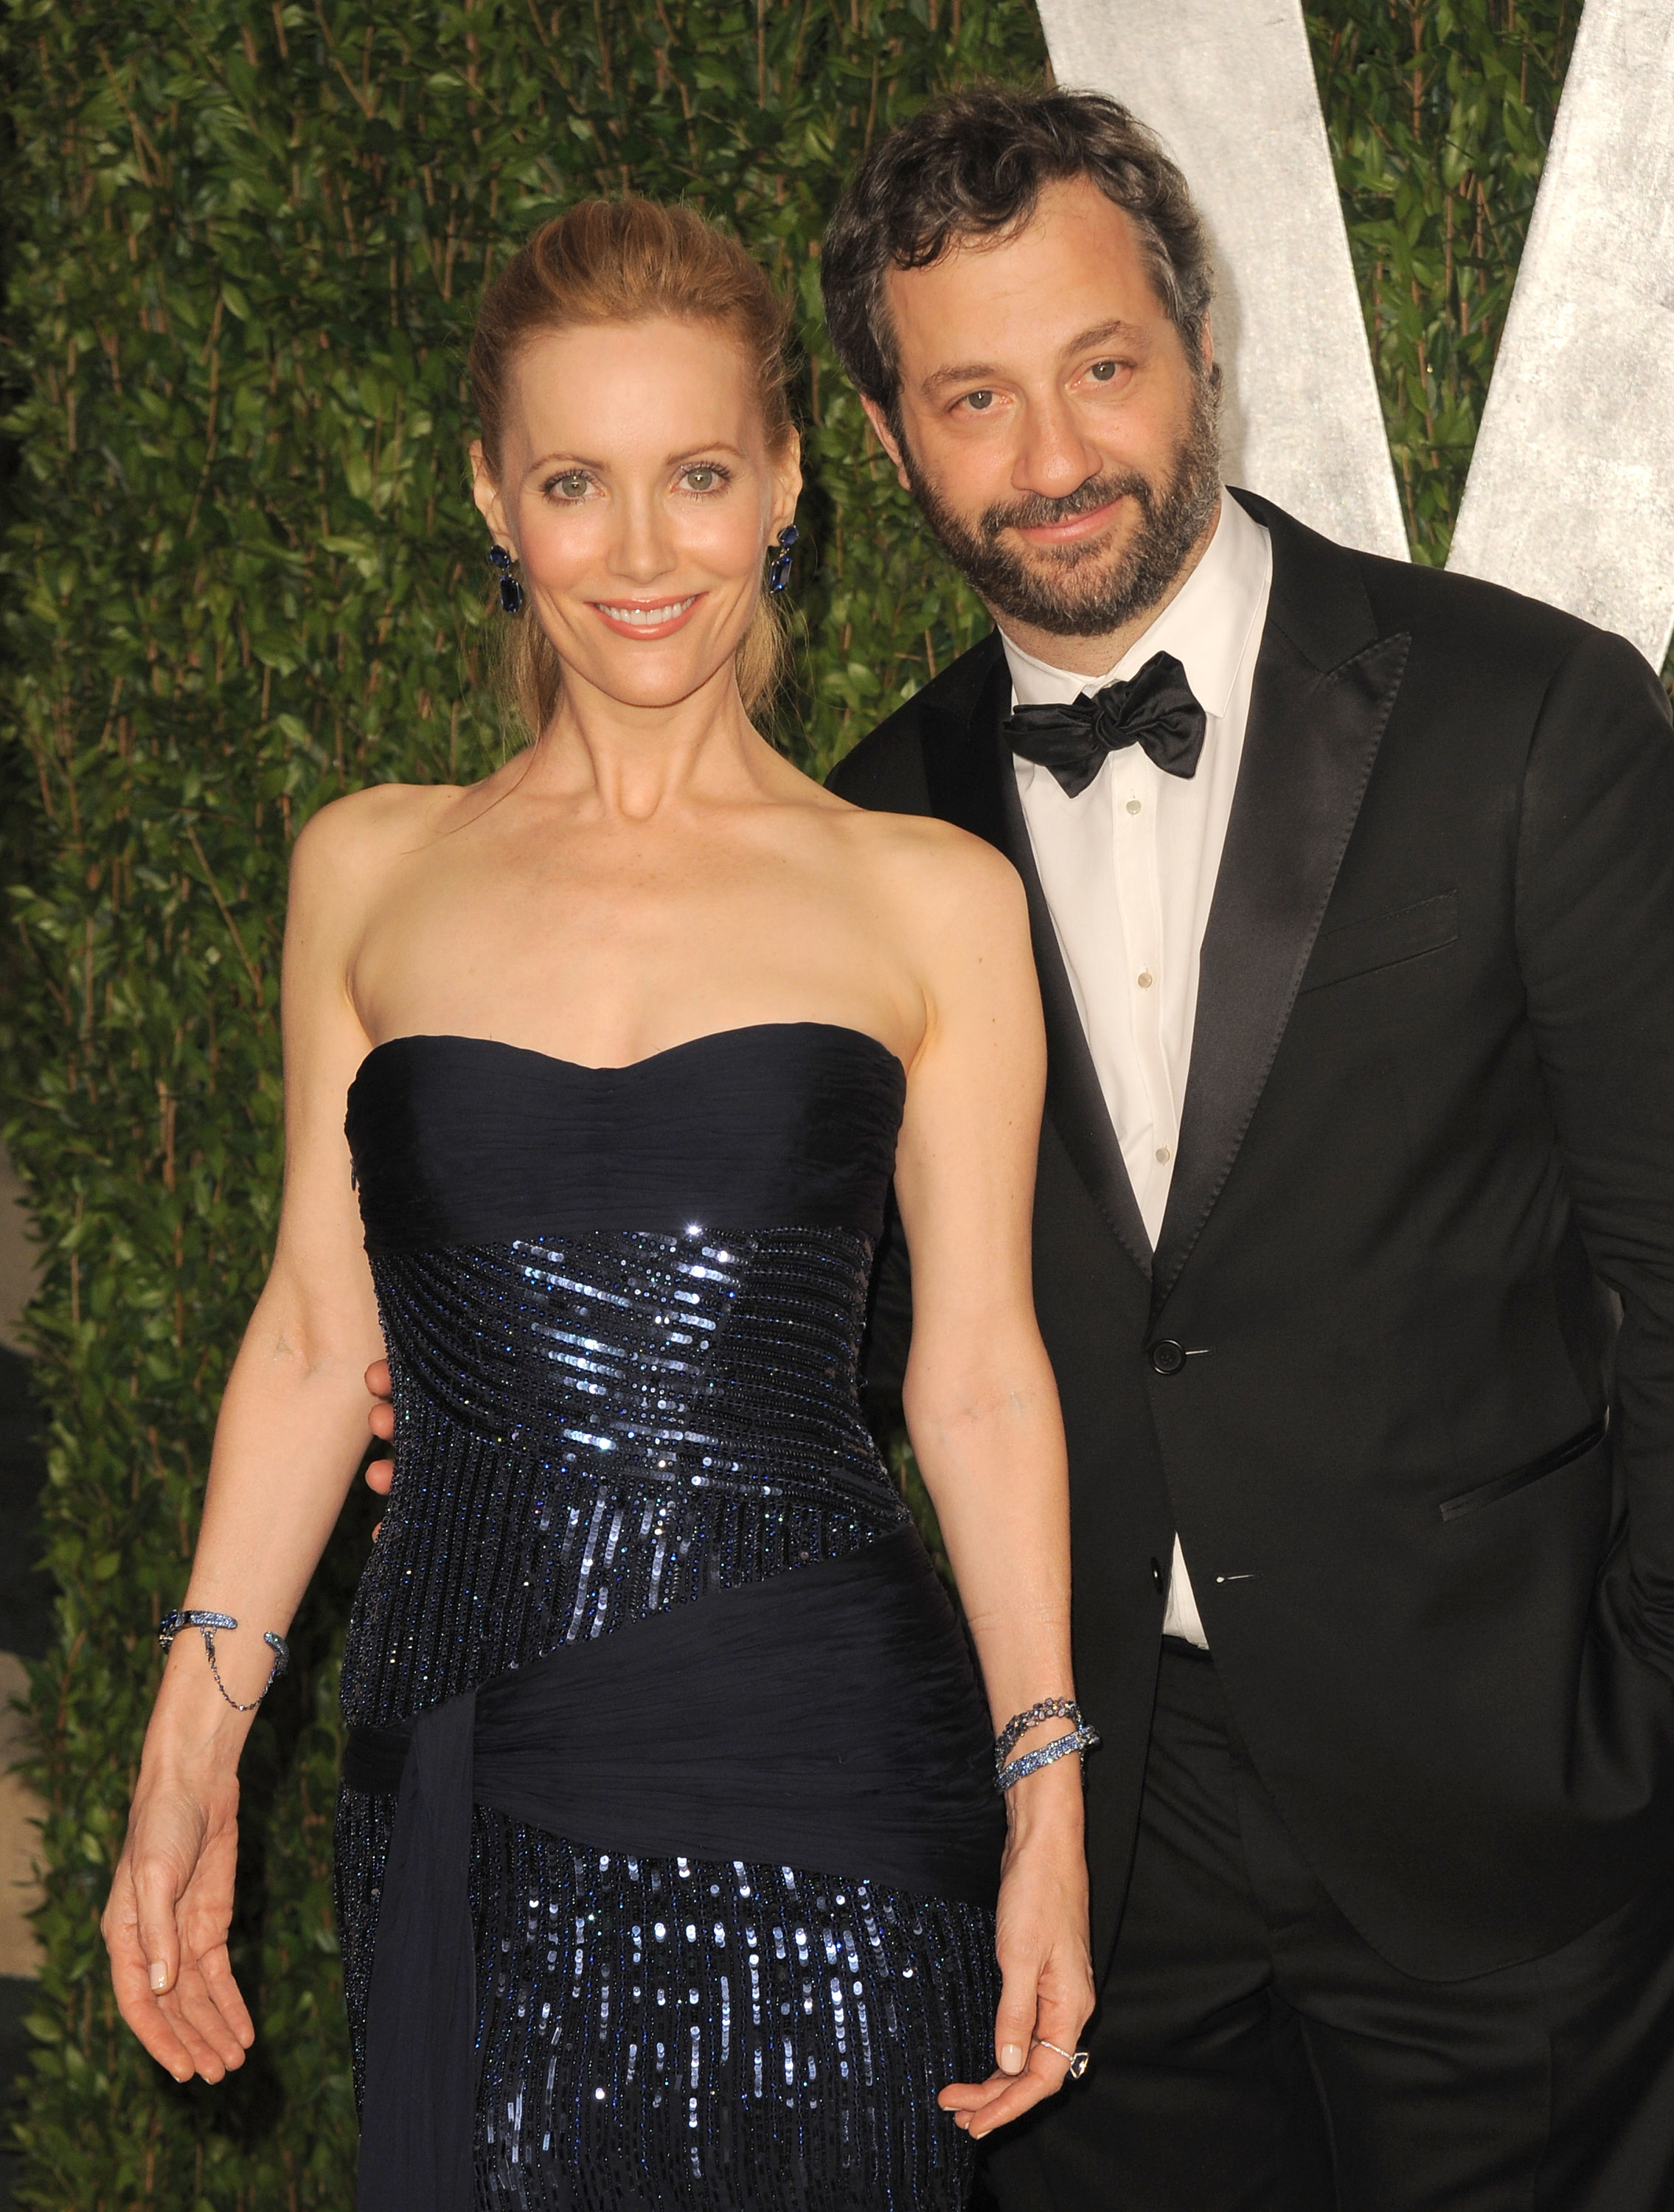 Judd Apatow and his wife Leslie Mann at the Vanity Fair carpet.